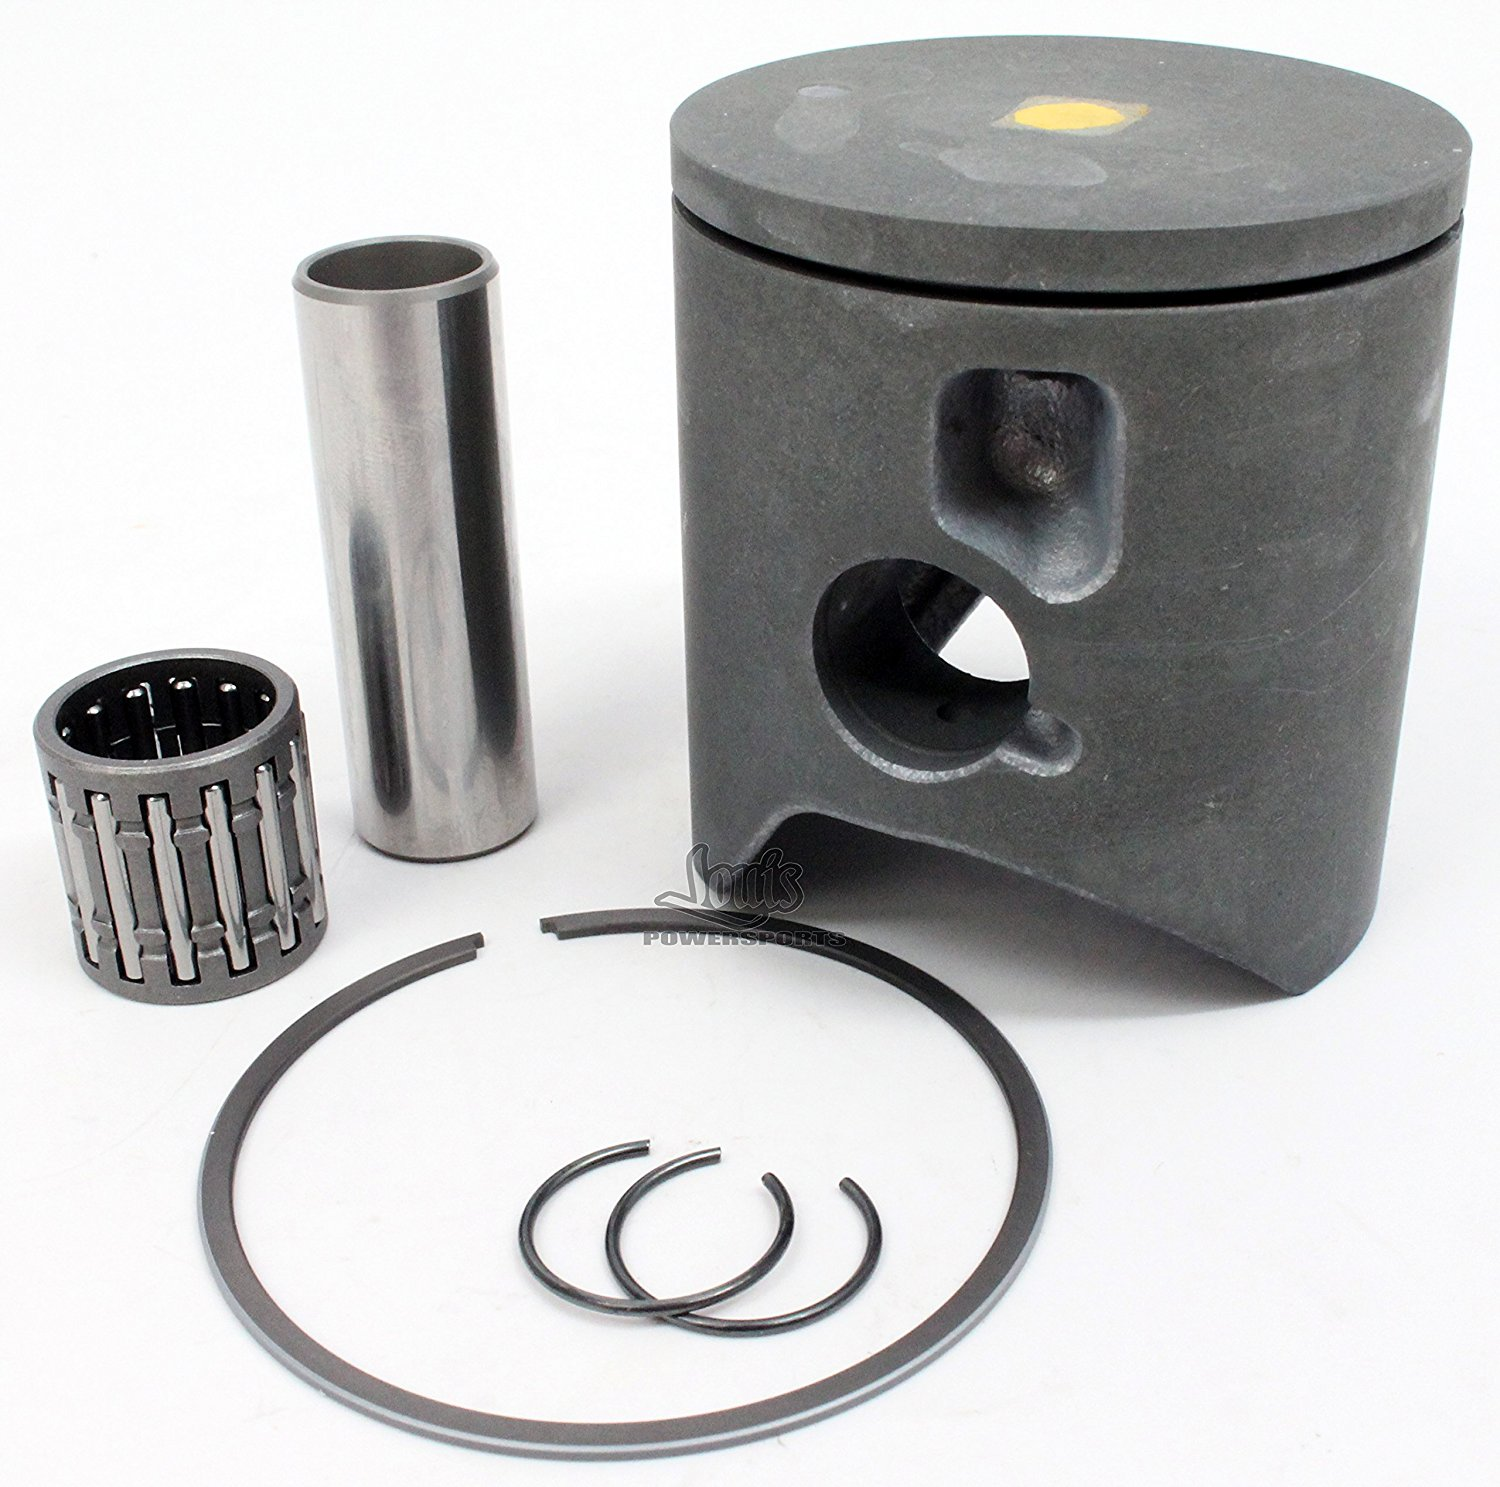 Cheap Rm 125 Piston, find Rm 125 Piston deals on line at